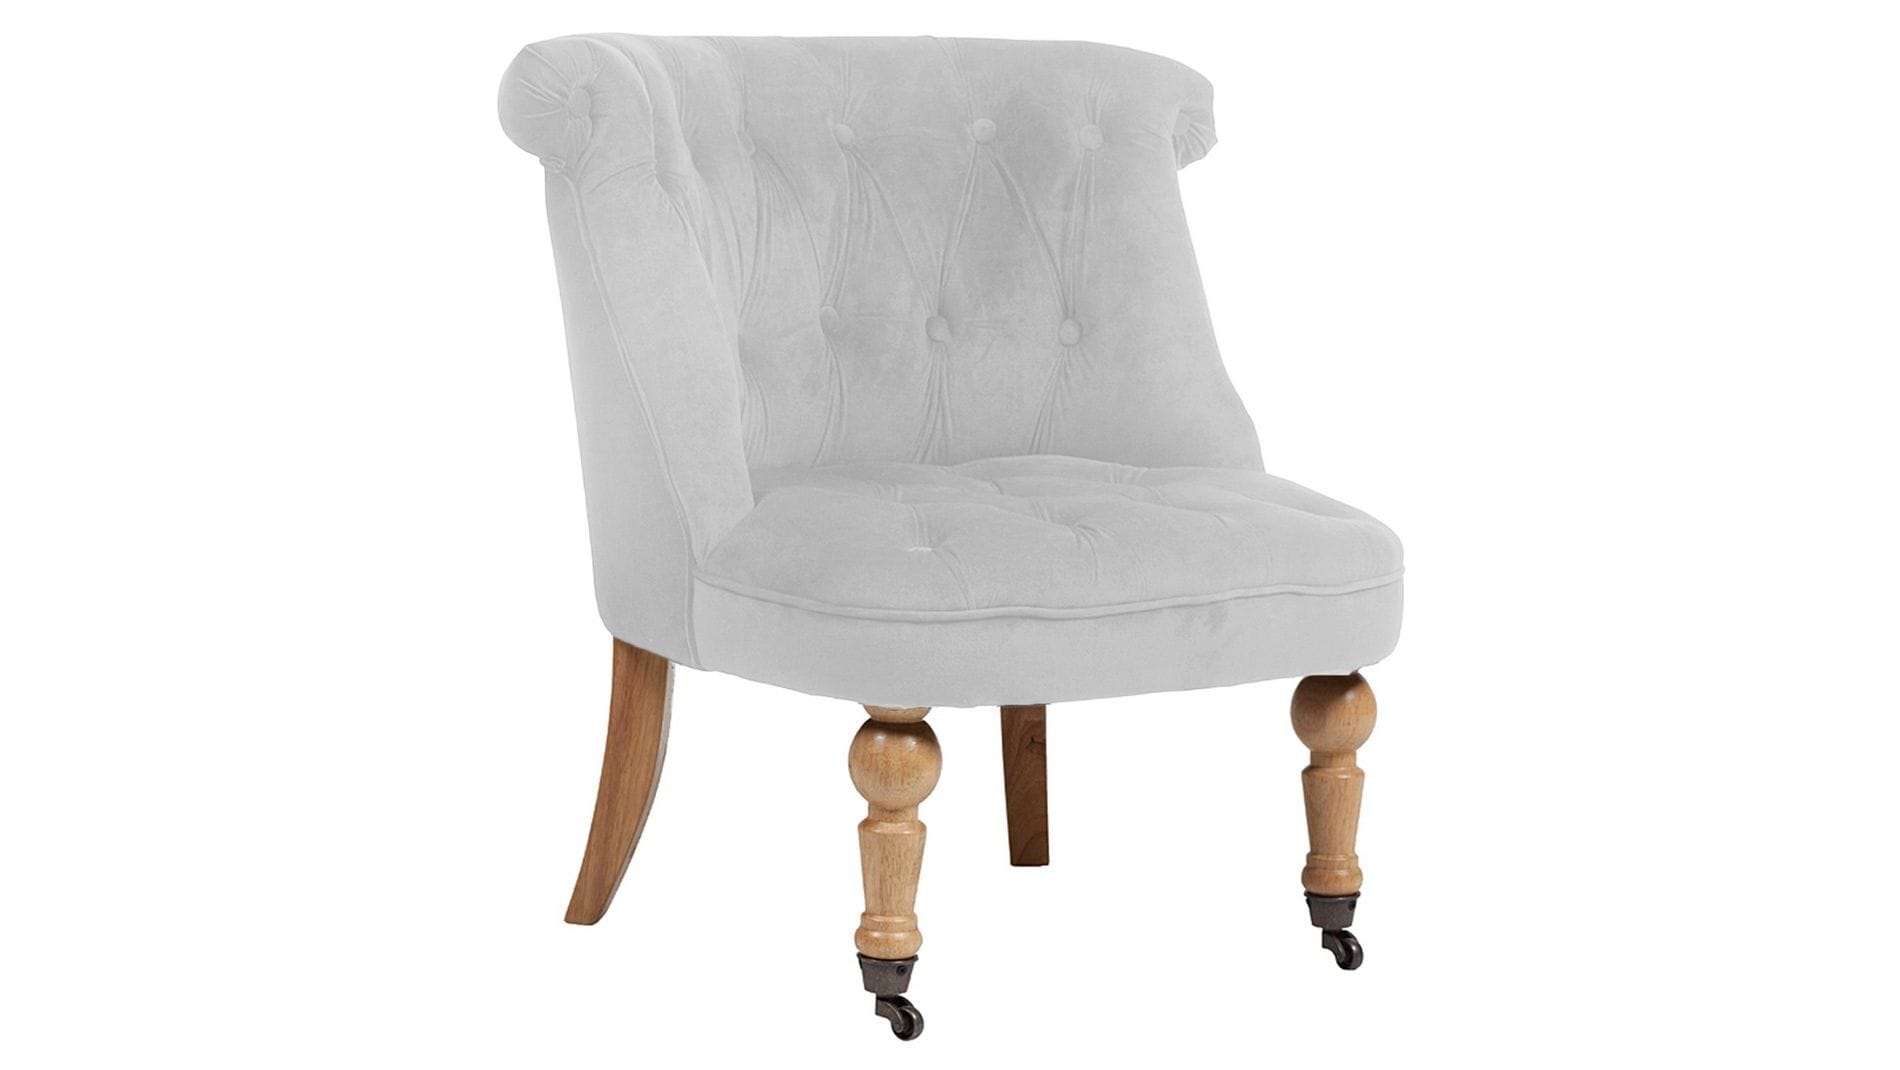 Кресло Amelie French Country Chair Молочный Велюр М